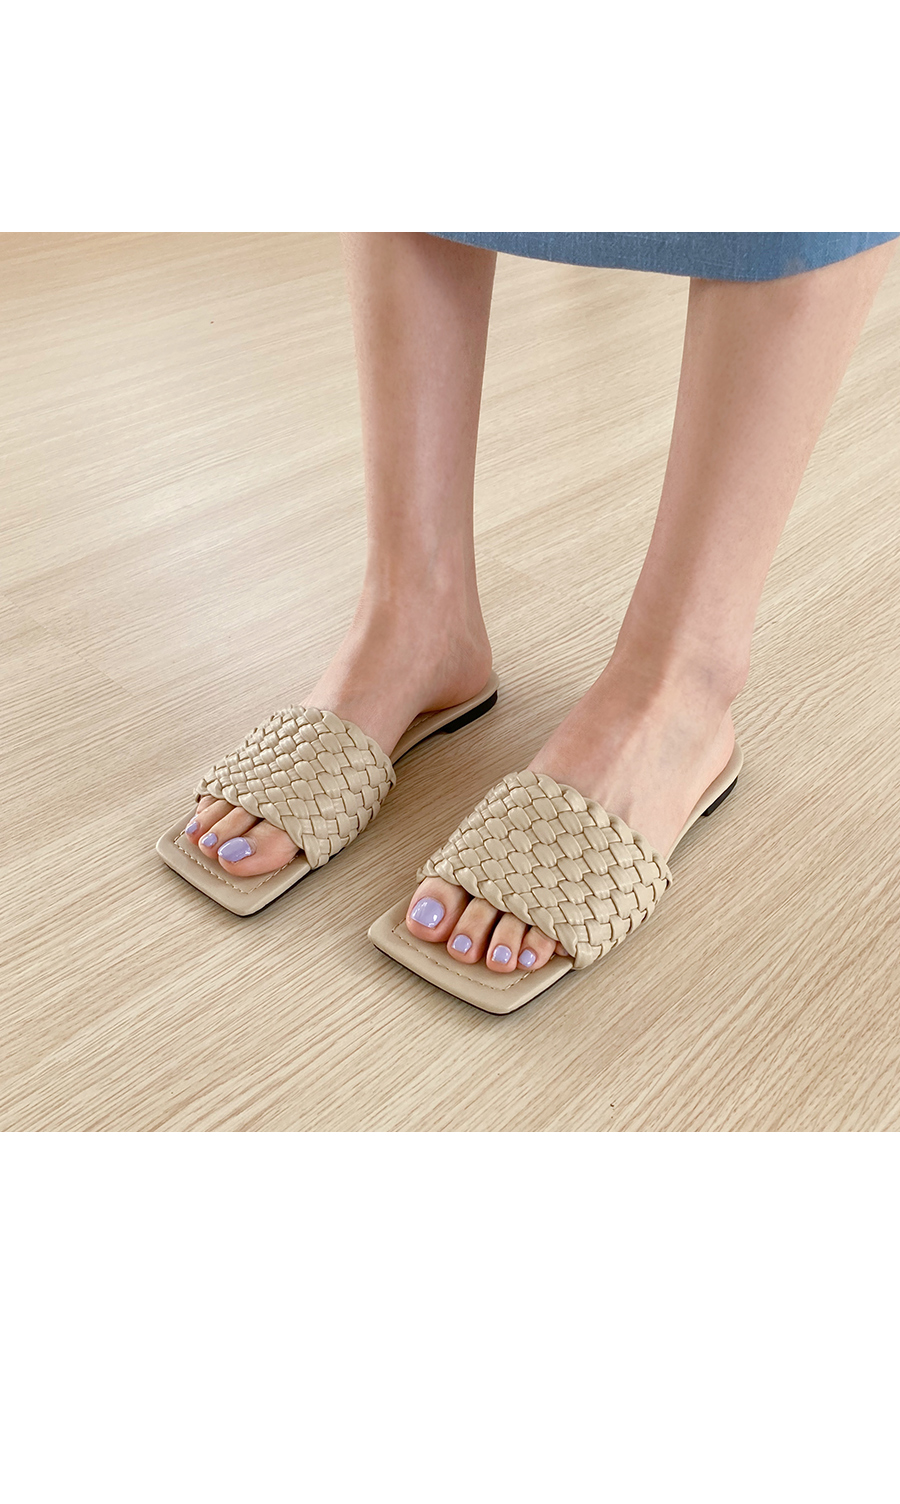 Boter twisted slippers